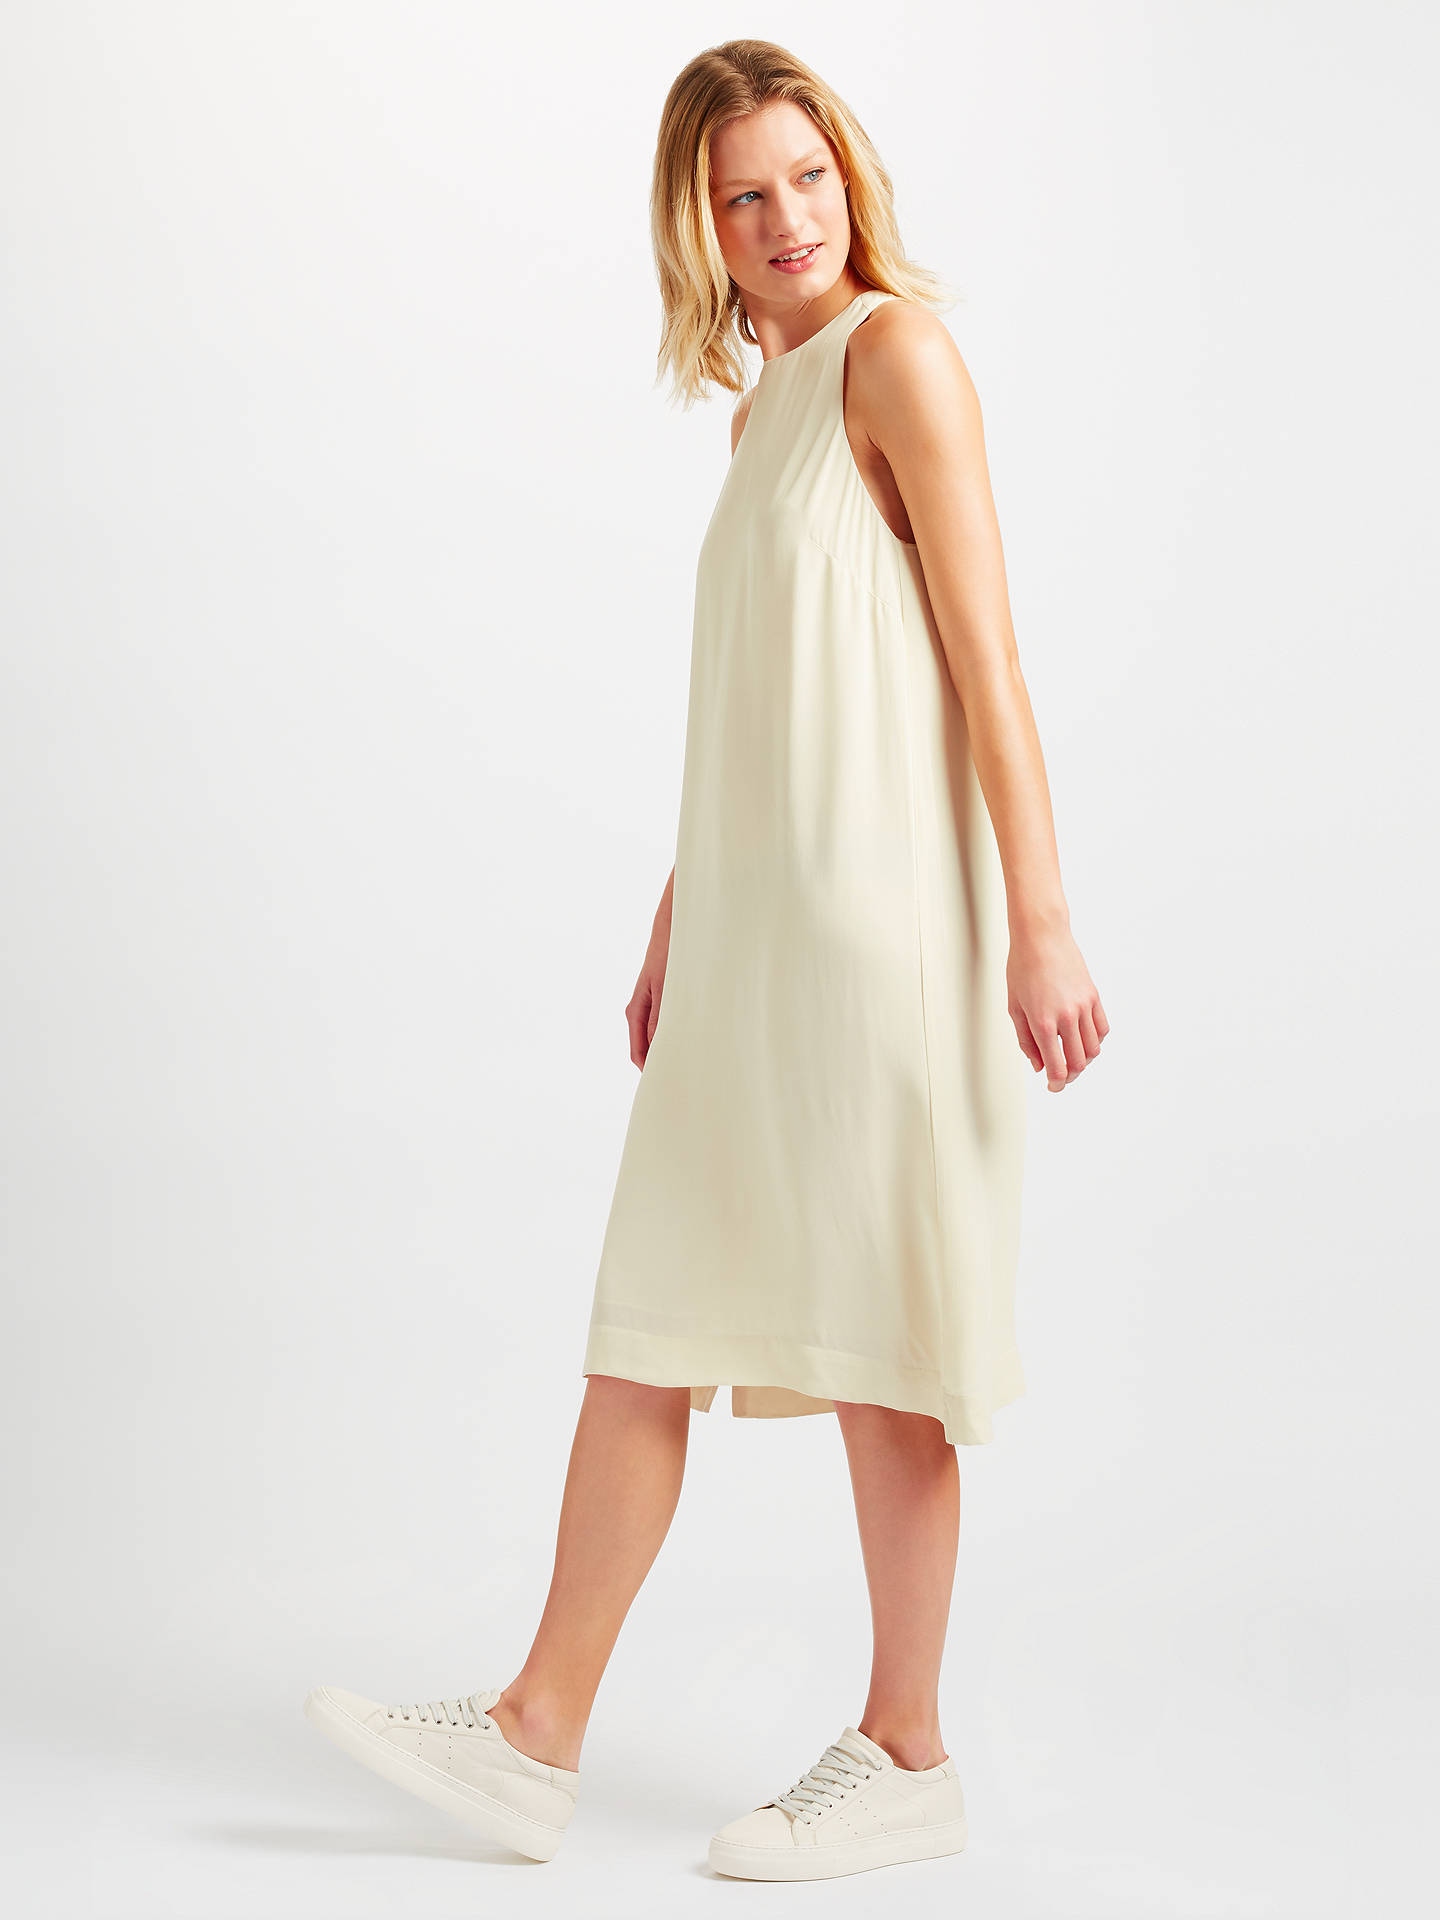 Samsoe & Samsoe Edda Dress, Turtle Dove at John Lewis & Partners